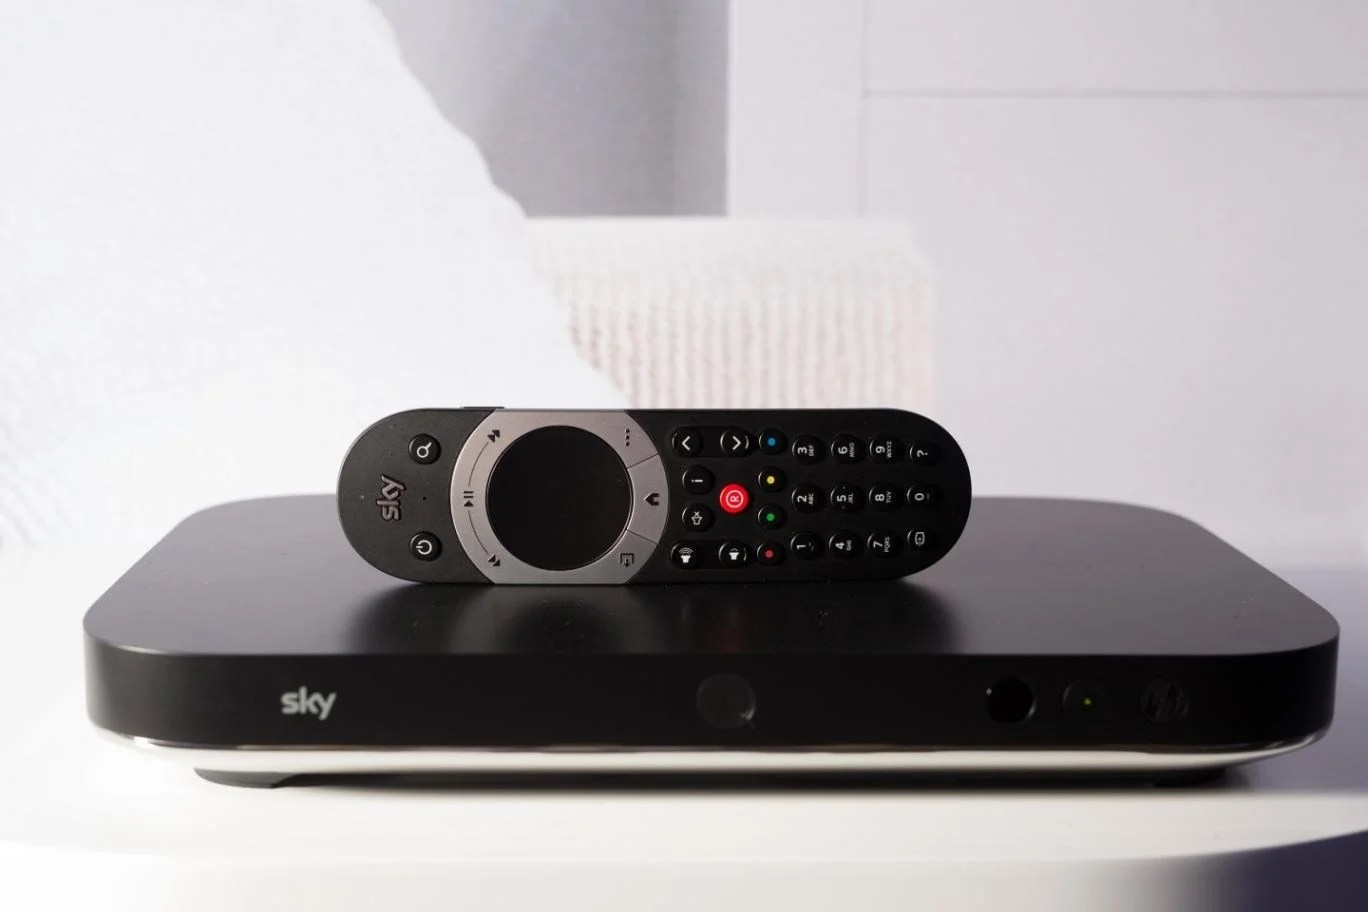 The Sky Q box also comes with a flashy new remote